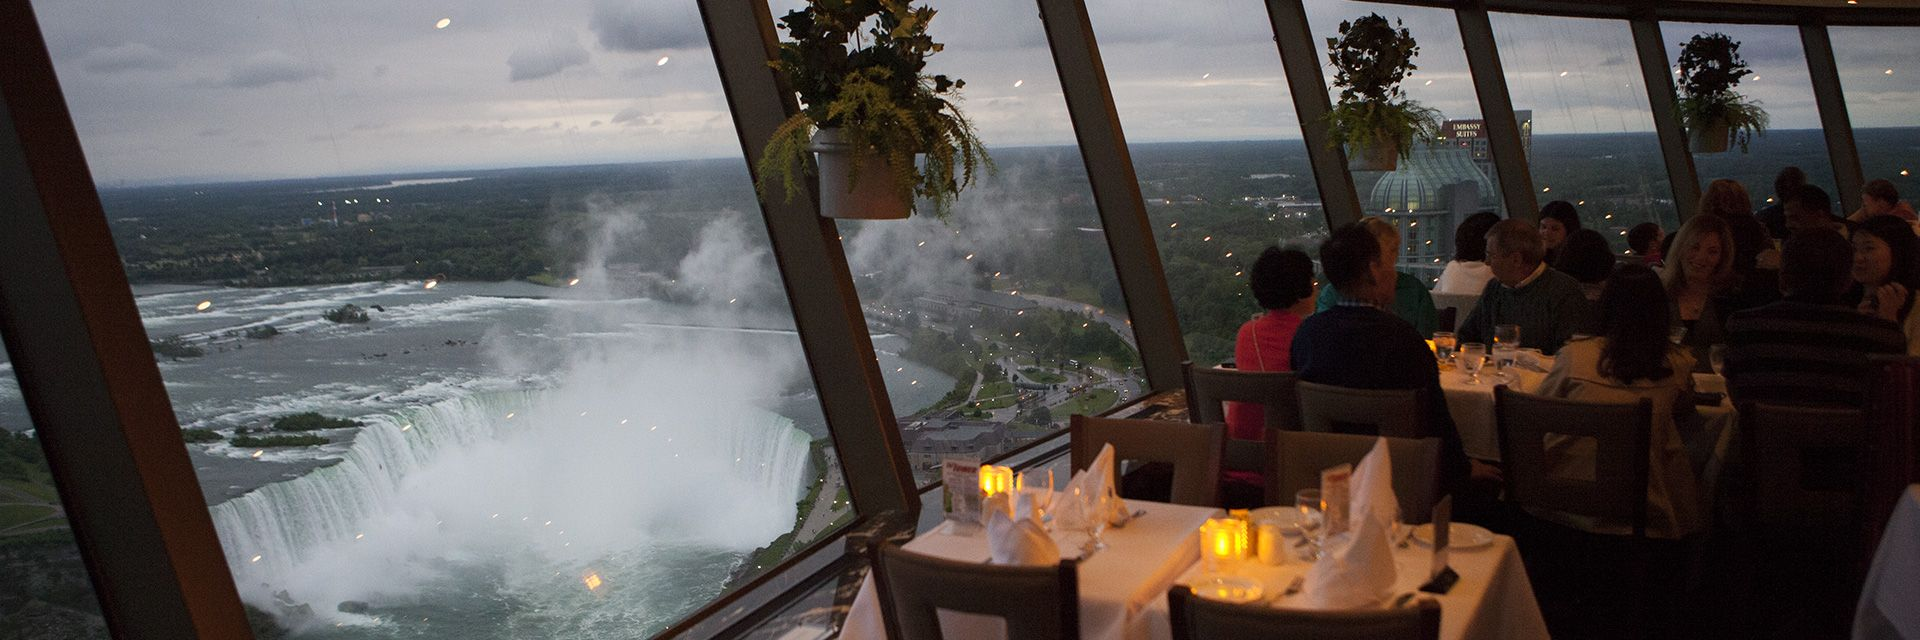 Great Niagara Falls Dining Is At The Skylon Tower 2 Restaurants To Choose From Summit Suite Buffet And Their Famous Revolving Room